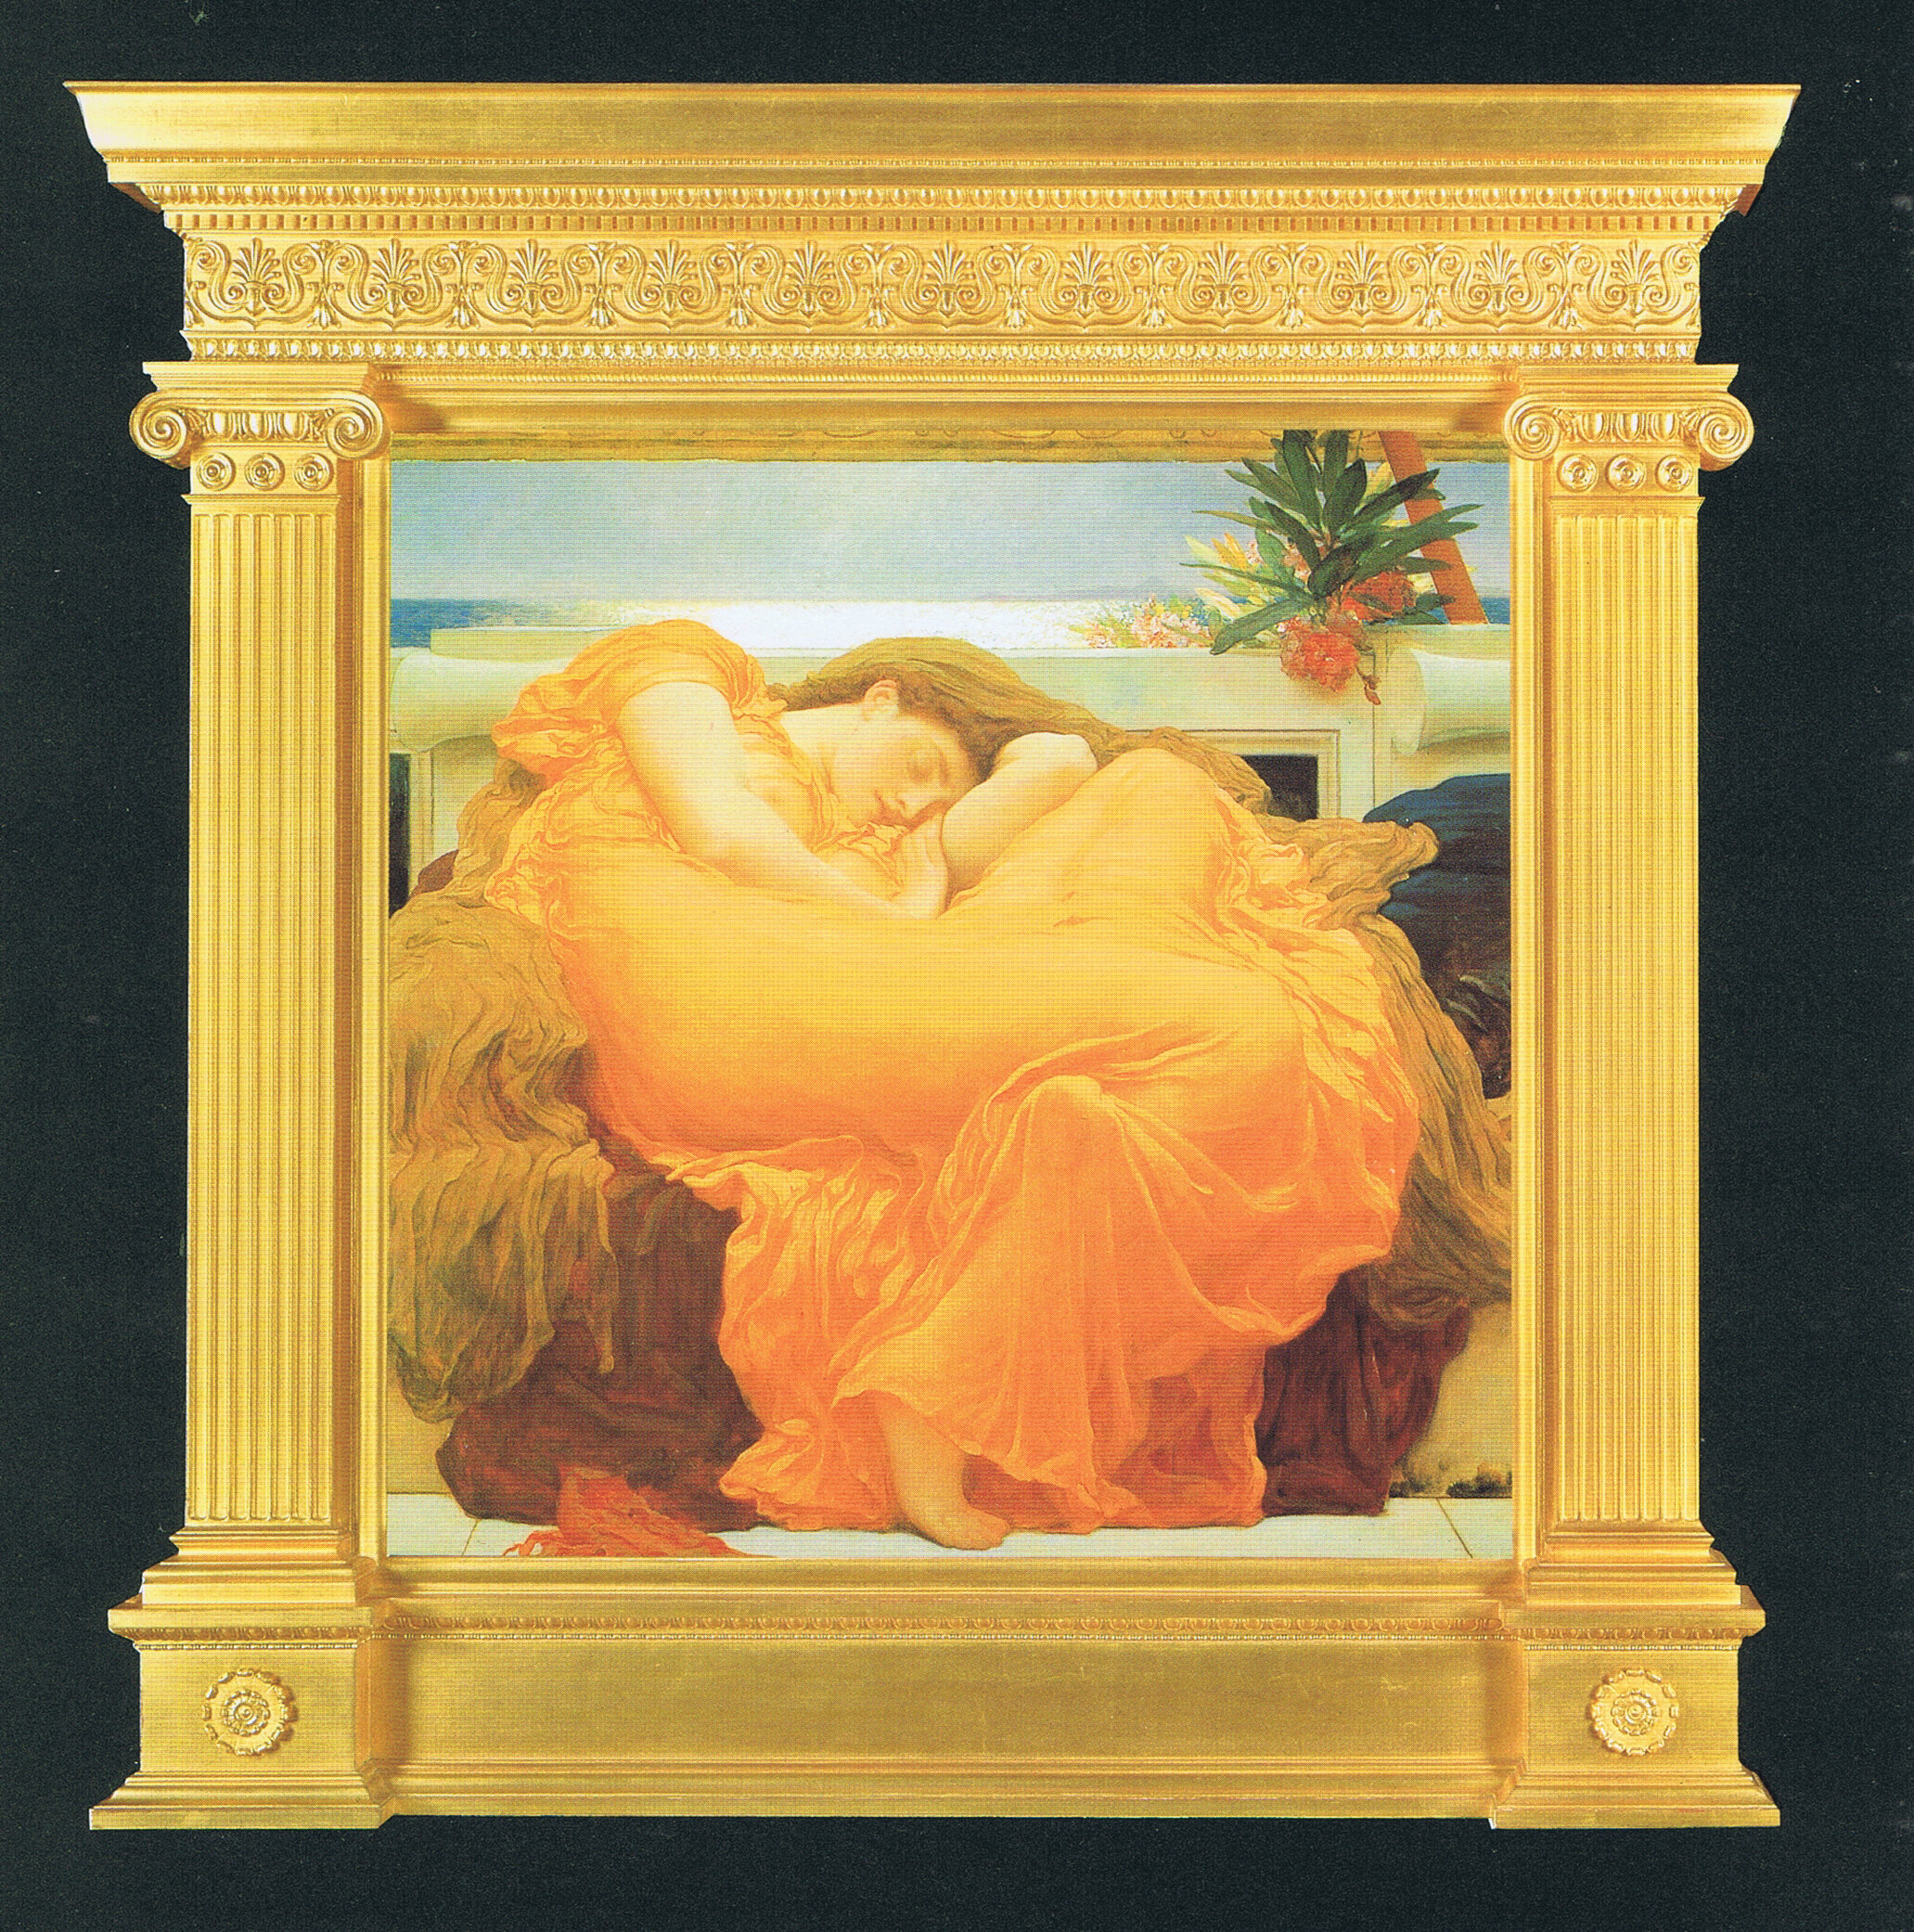 Frederic, Lord Leighton  Flaming June  1895, oil on canvas, 46 7/8 x 46 7/8 ins. Courtesy, Museo de Arte de Ponce, the Louis A. Ferré Foundation Inc., Puerto Rico. Reproduction of original tabernacle frame designed by Frederic, Lord Leighton, commissioned by Christie's and made by Arnold Wiggins & Sons Limited, 1996.